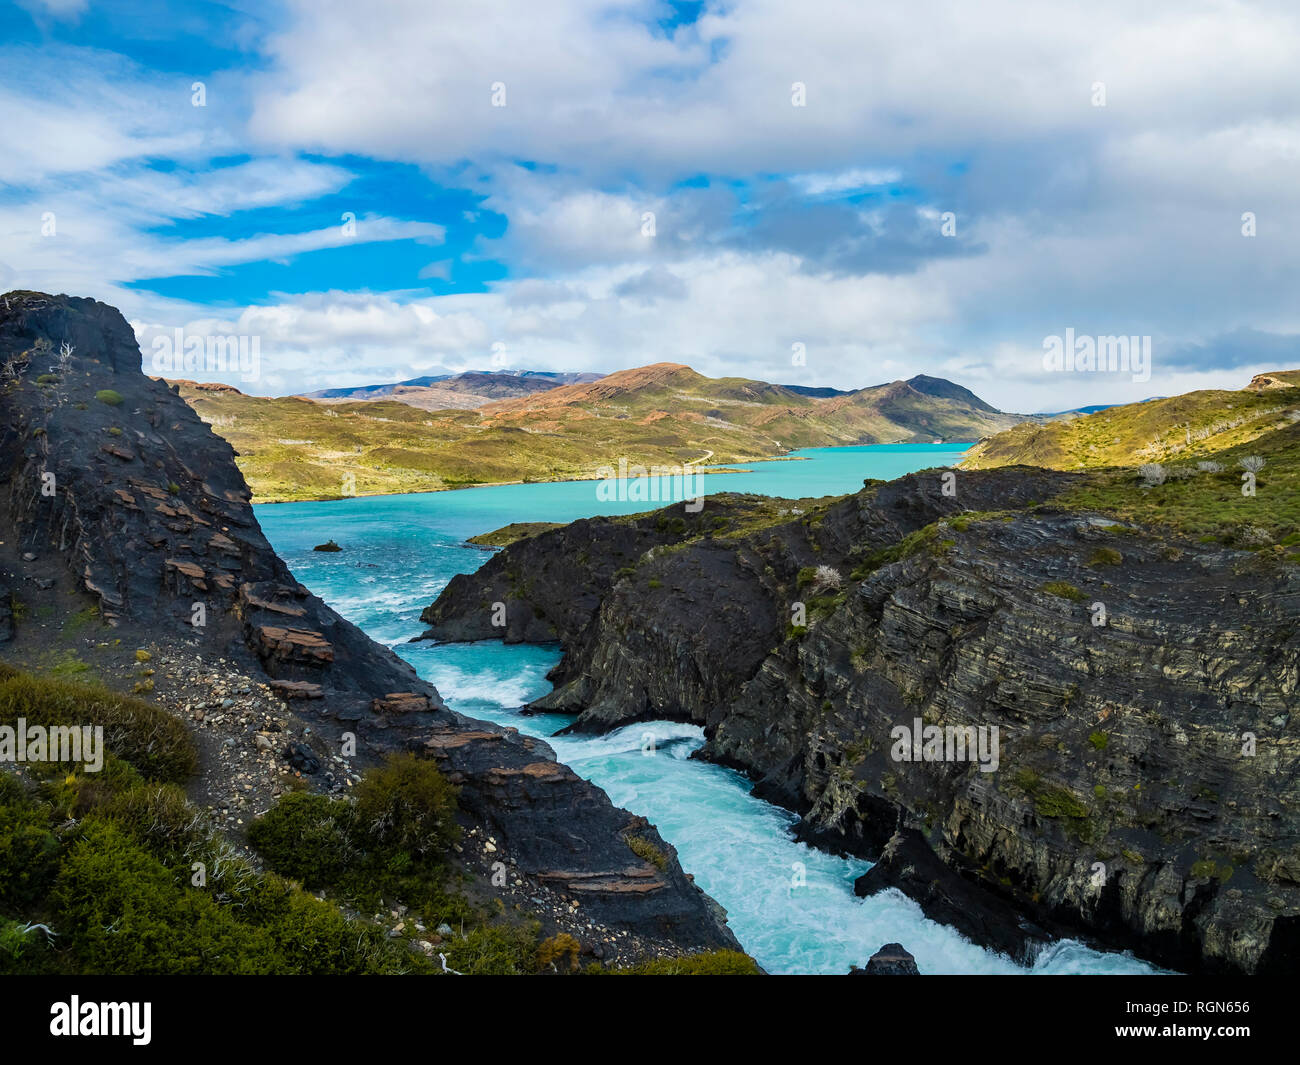 South America, Chile, Patagonia, View to Rio Paine, Torres del Paine National Park - Stock Image